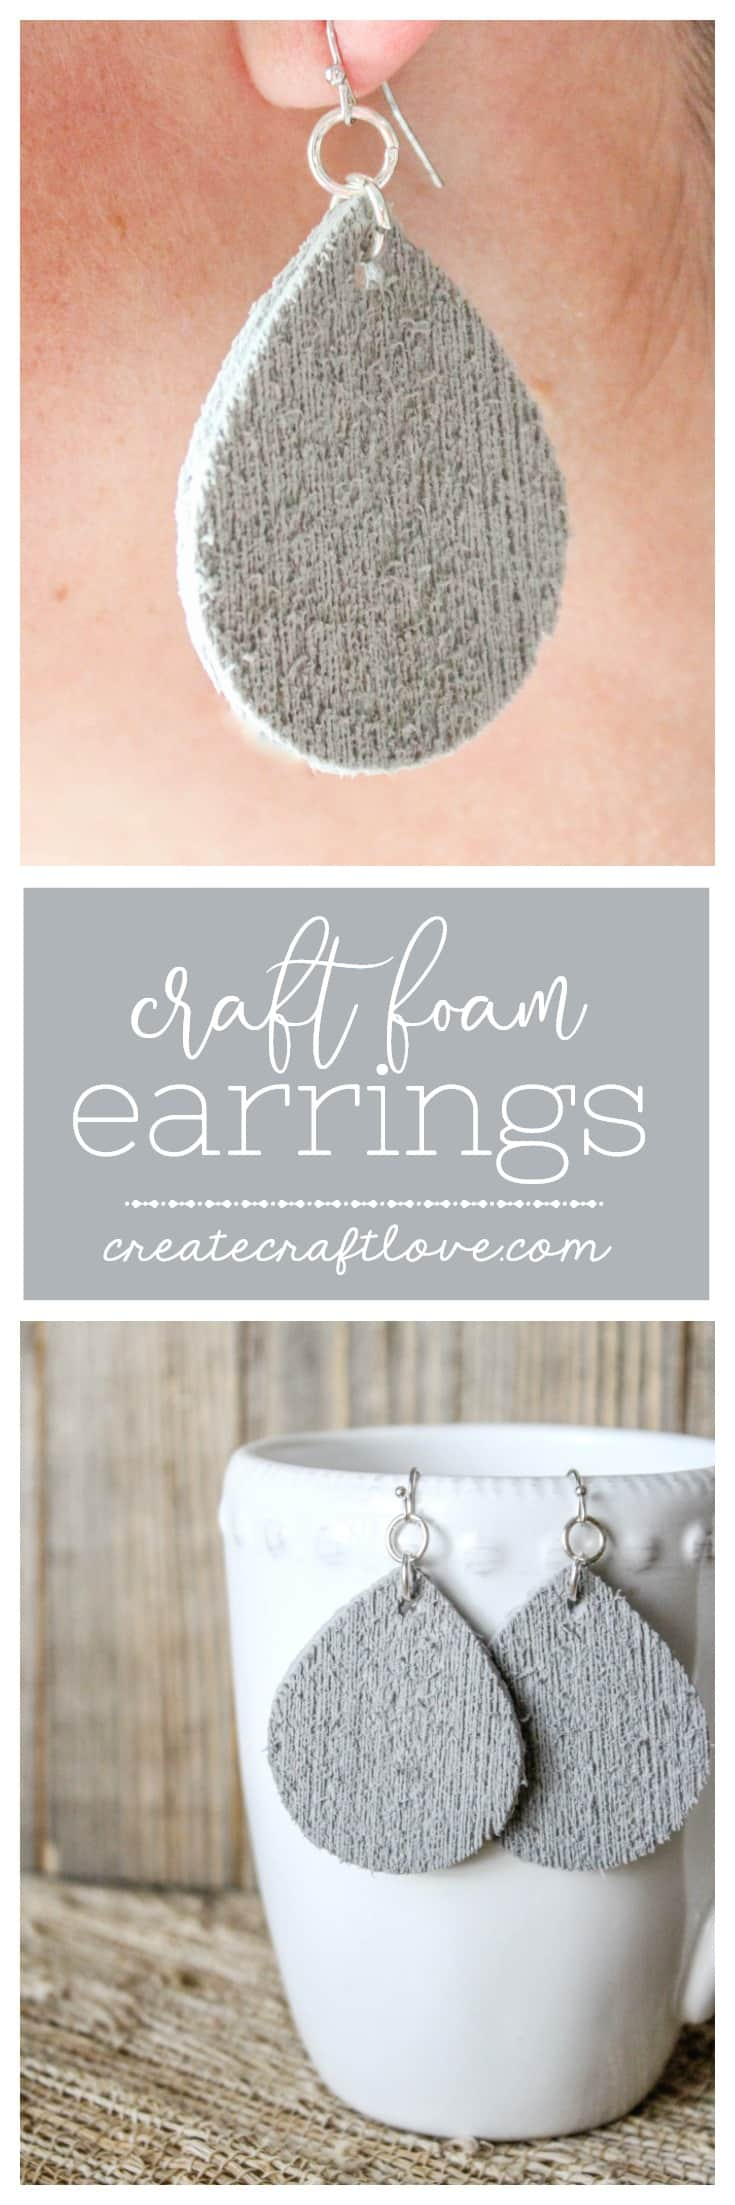 Create and customize your jewelry with these Cricut Craft Foam Earrings!